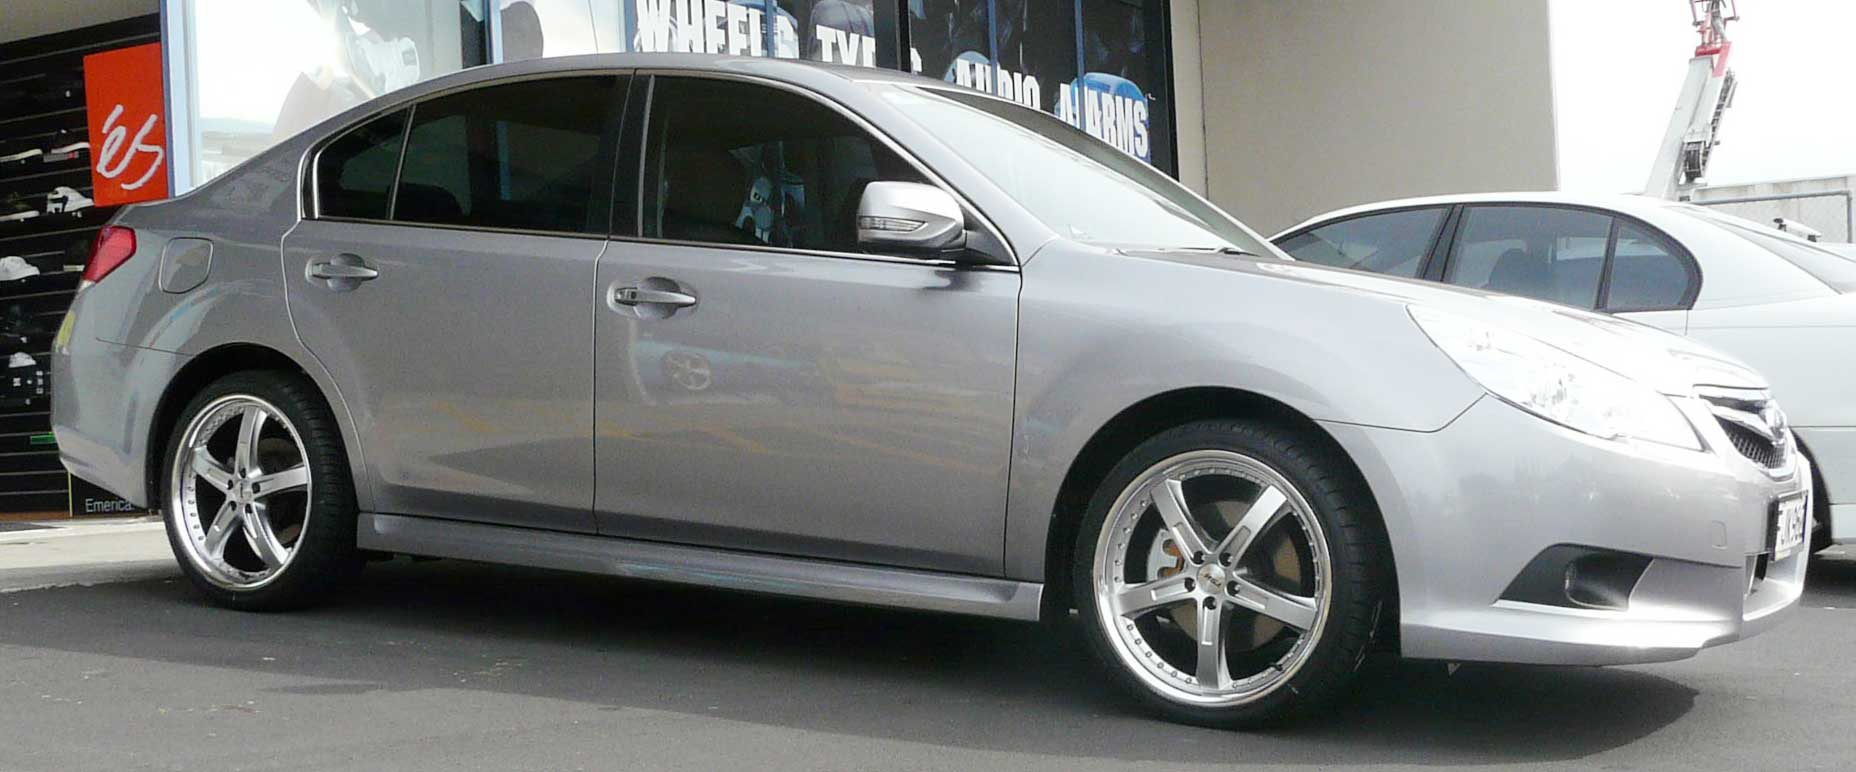 Subaru Legacy on TSW Jarama